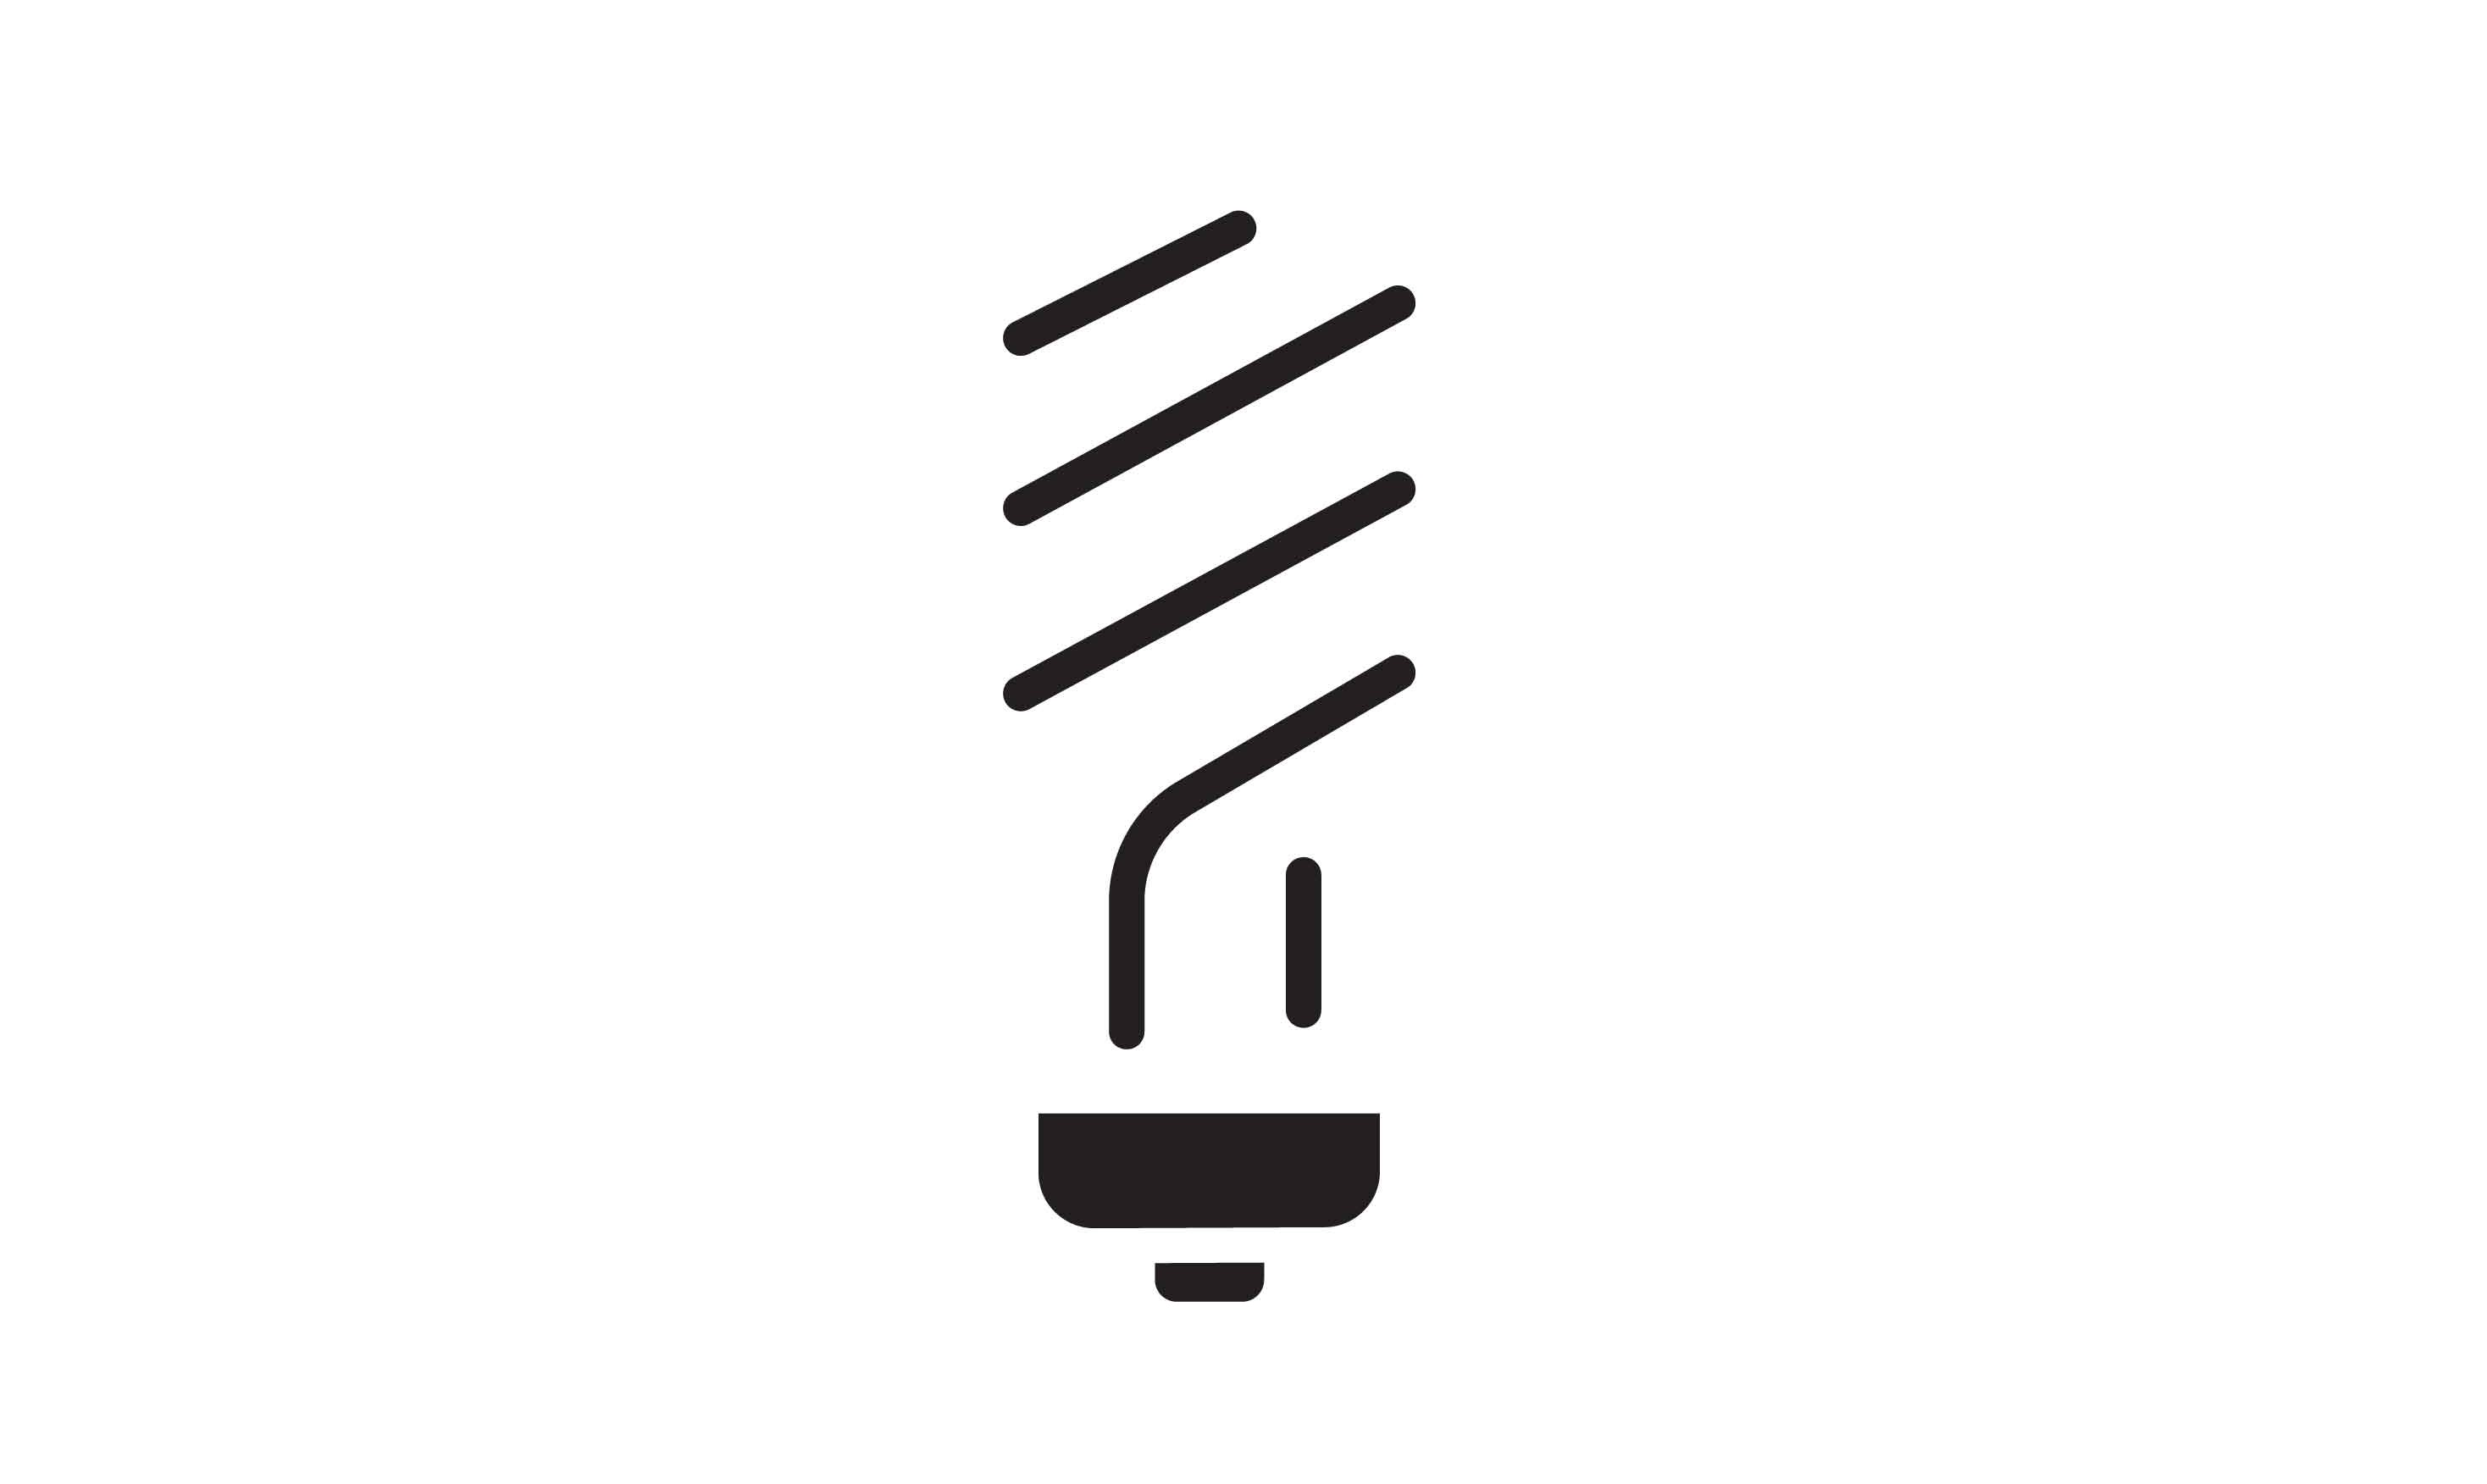 Download Free Lightbulb Graphic By Re Stock Creative Fabrica for Cricut Explore, Silhouette and other cutting machines.